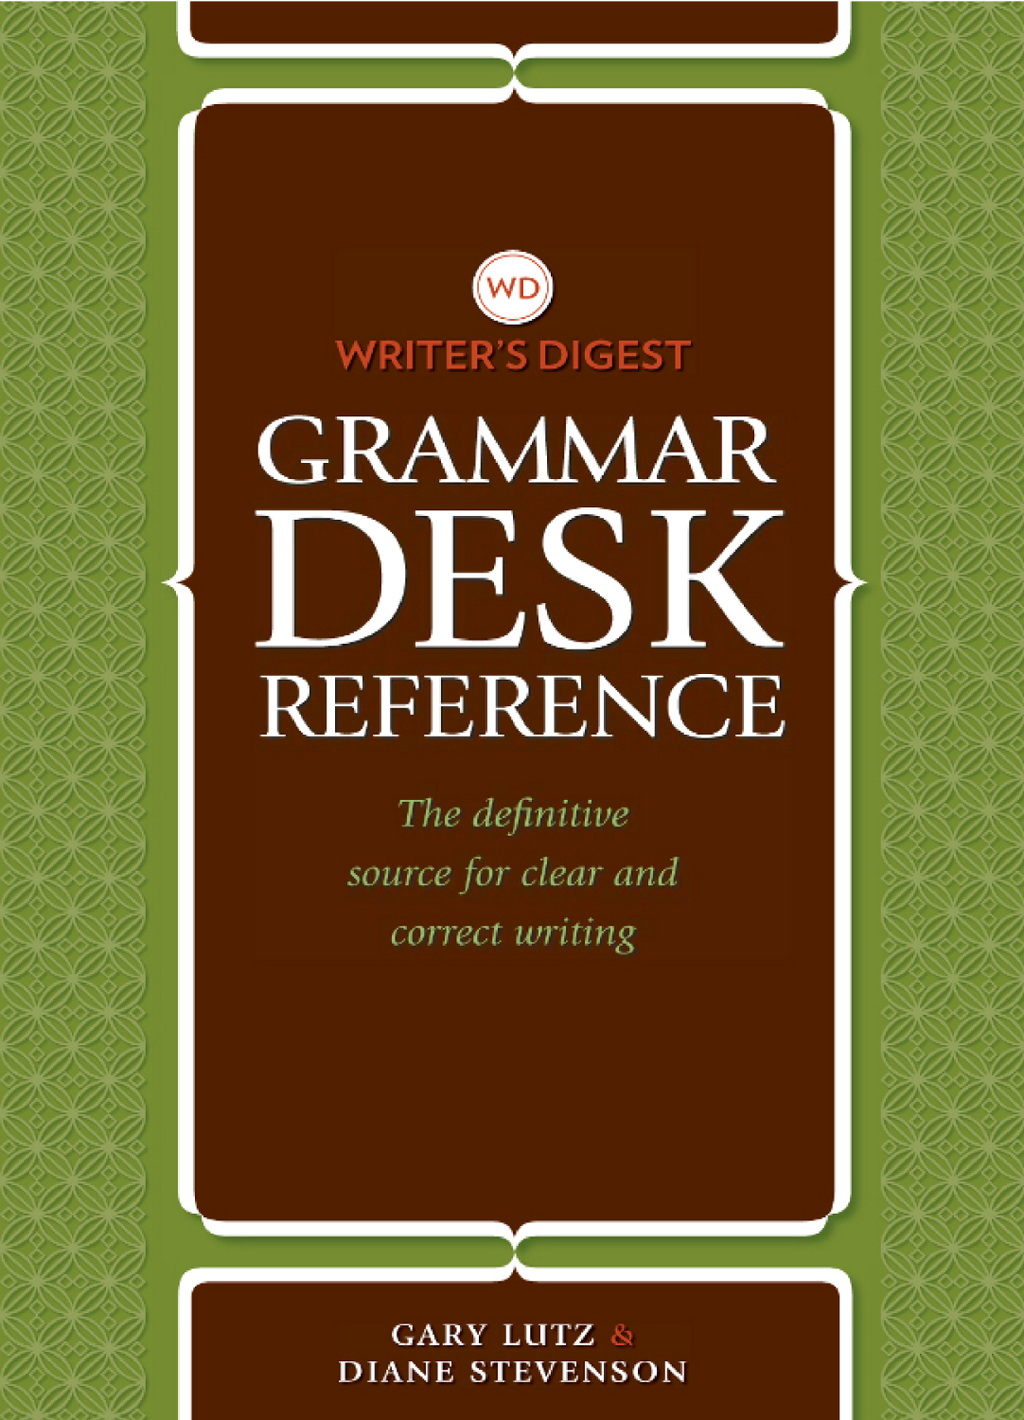 Writer's Digest Grammar Desk Reference The Definitive Source for Clear and Concise Writing